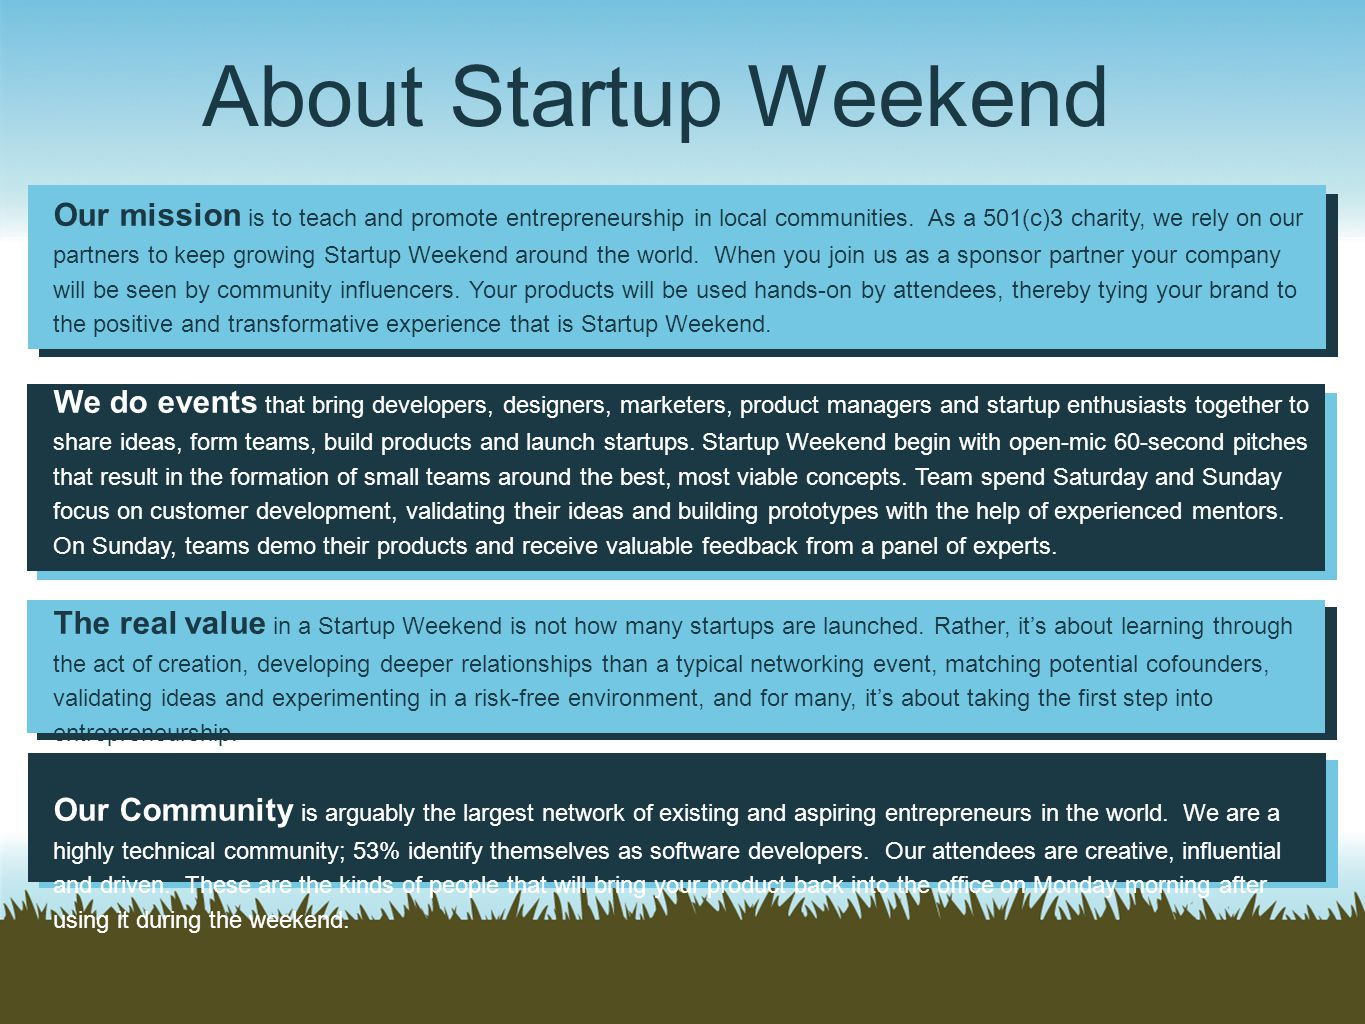 About Startup Weekend